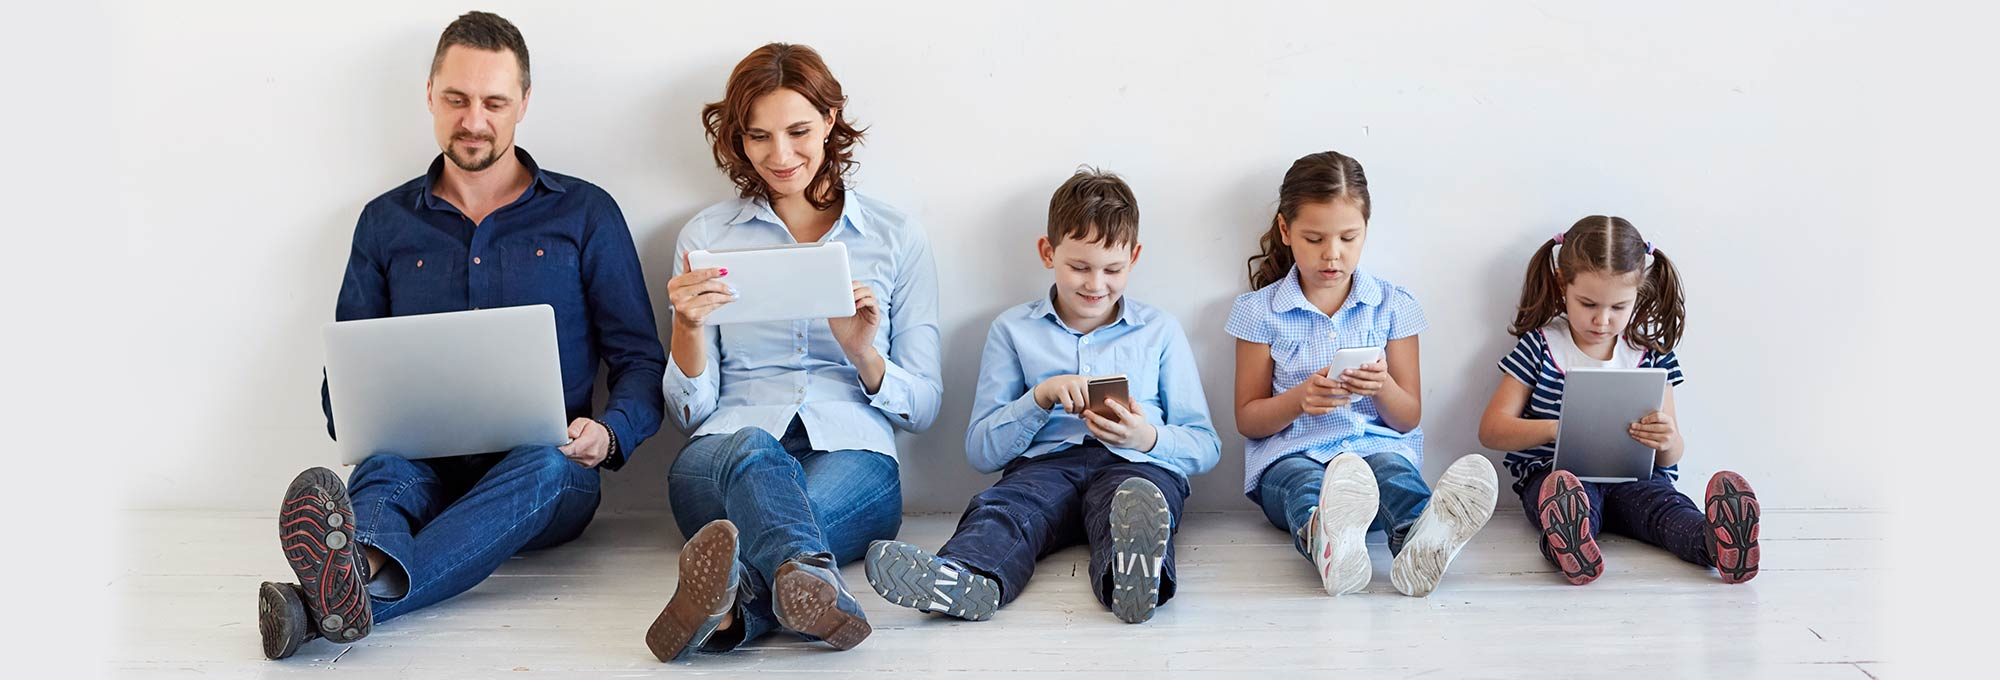 Family using the internet on five different devices